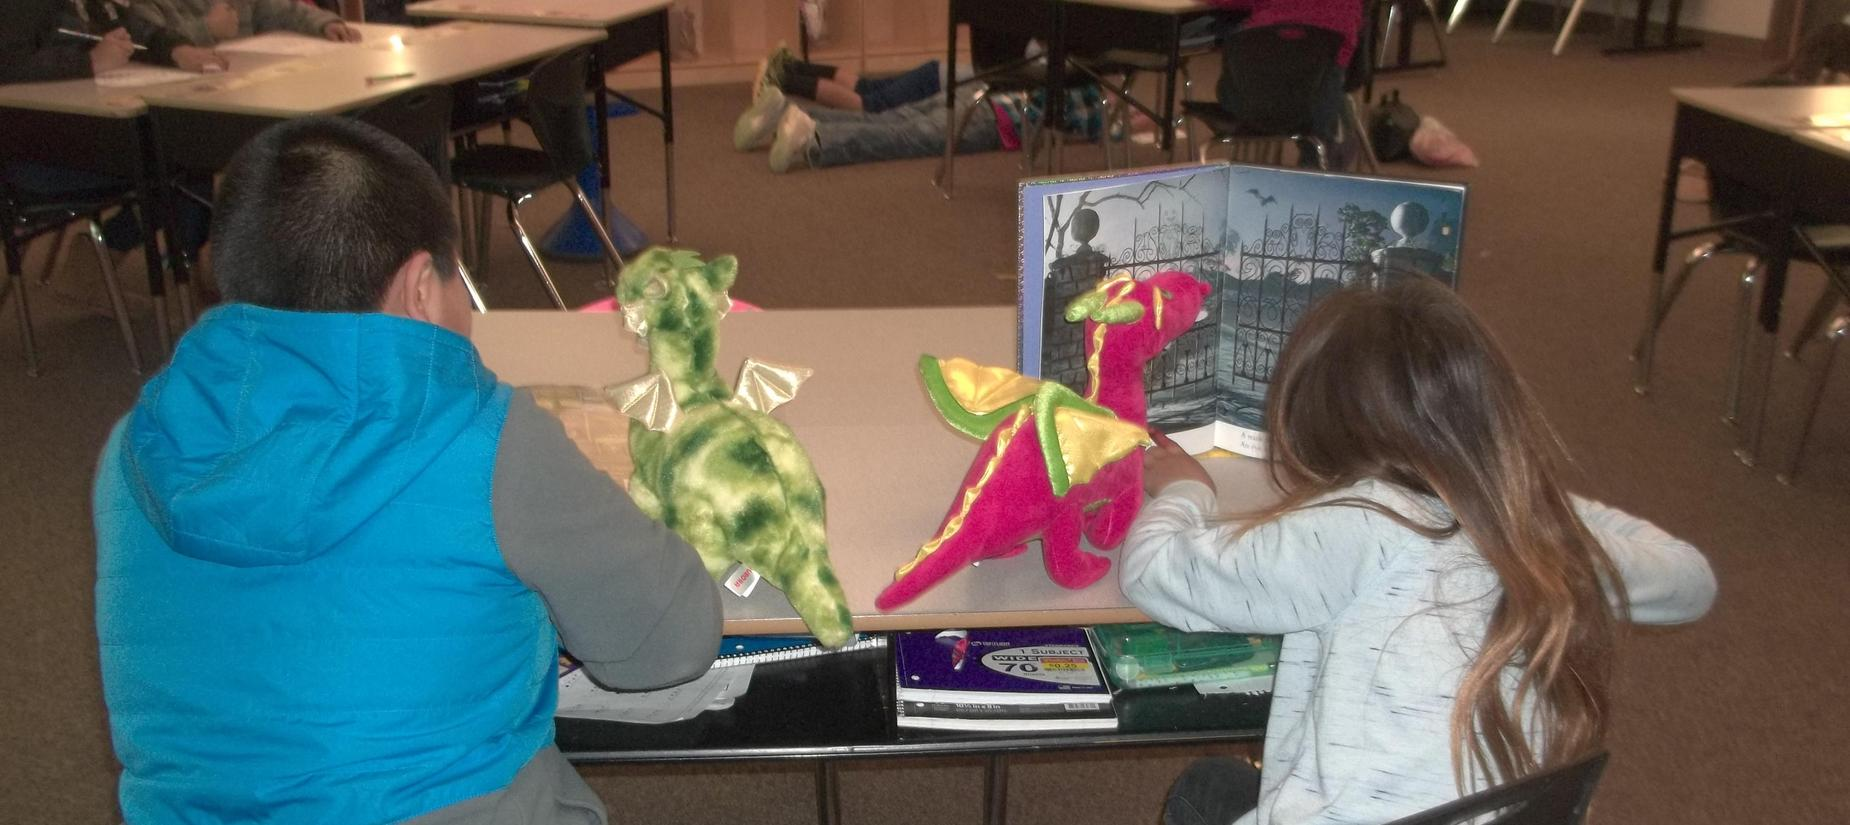 Students reading books with stuffed animals